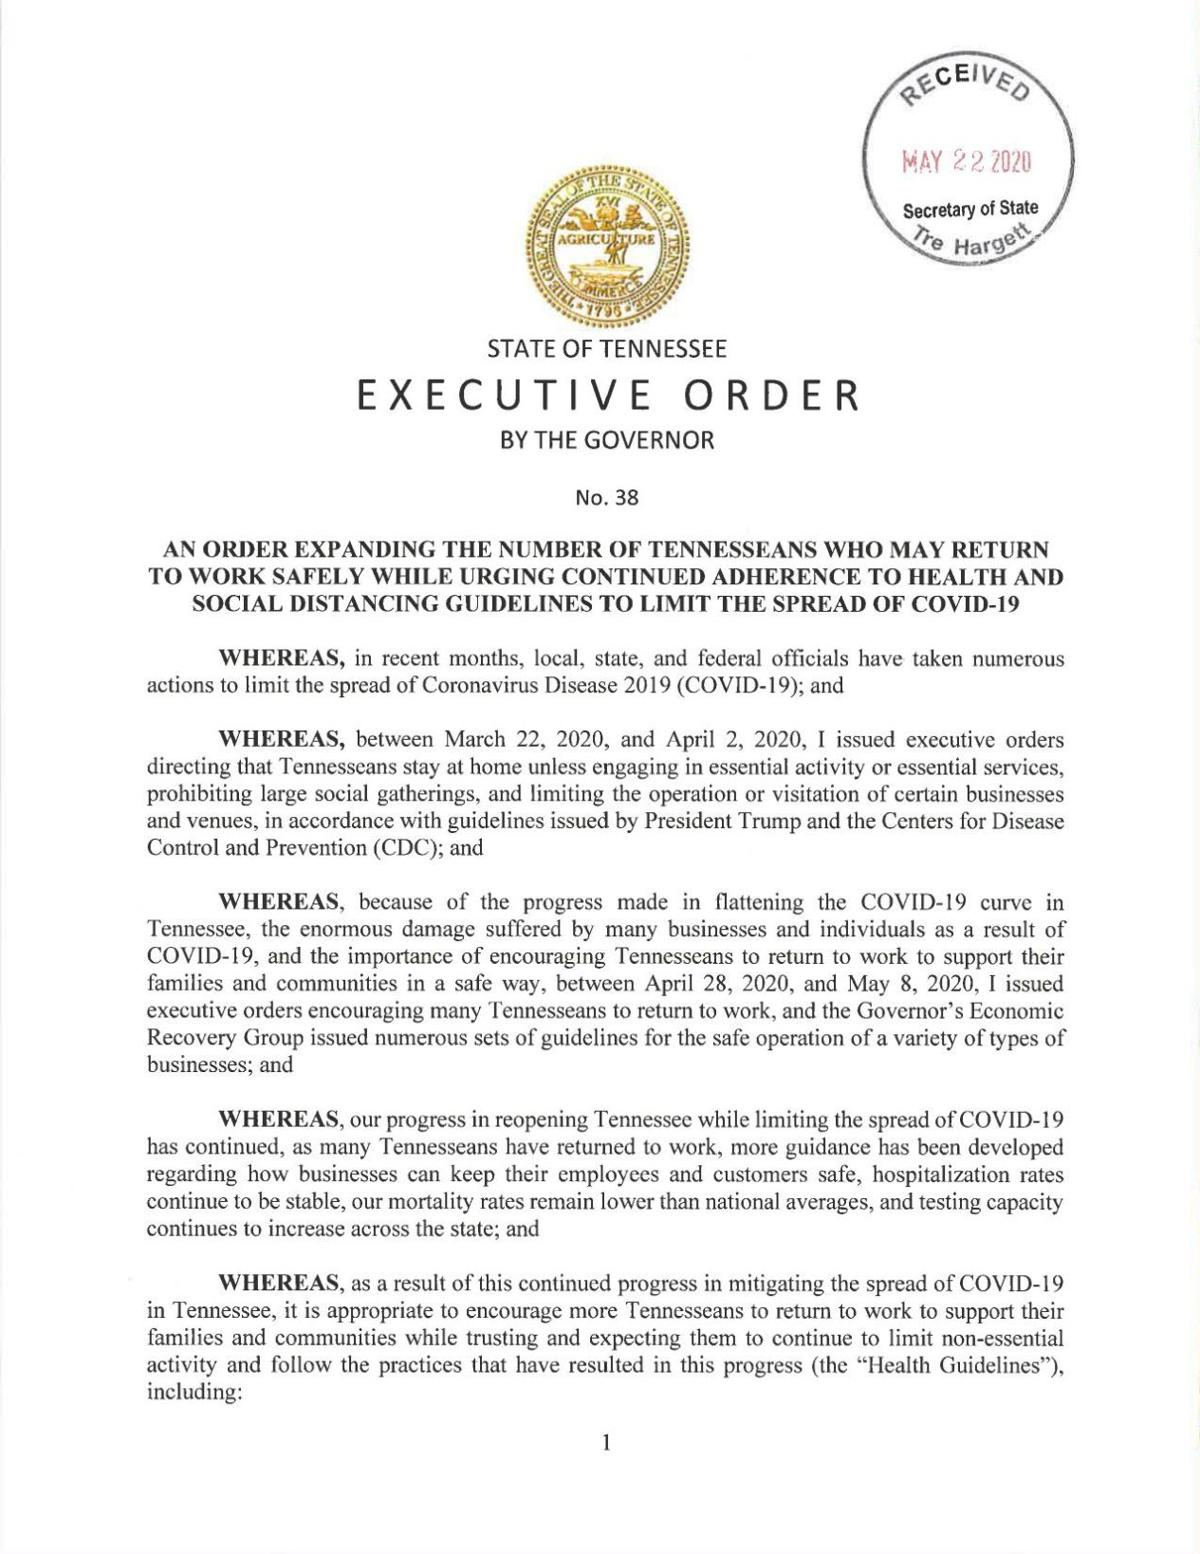 Gov. Bill Lee Executive Order 38